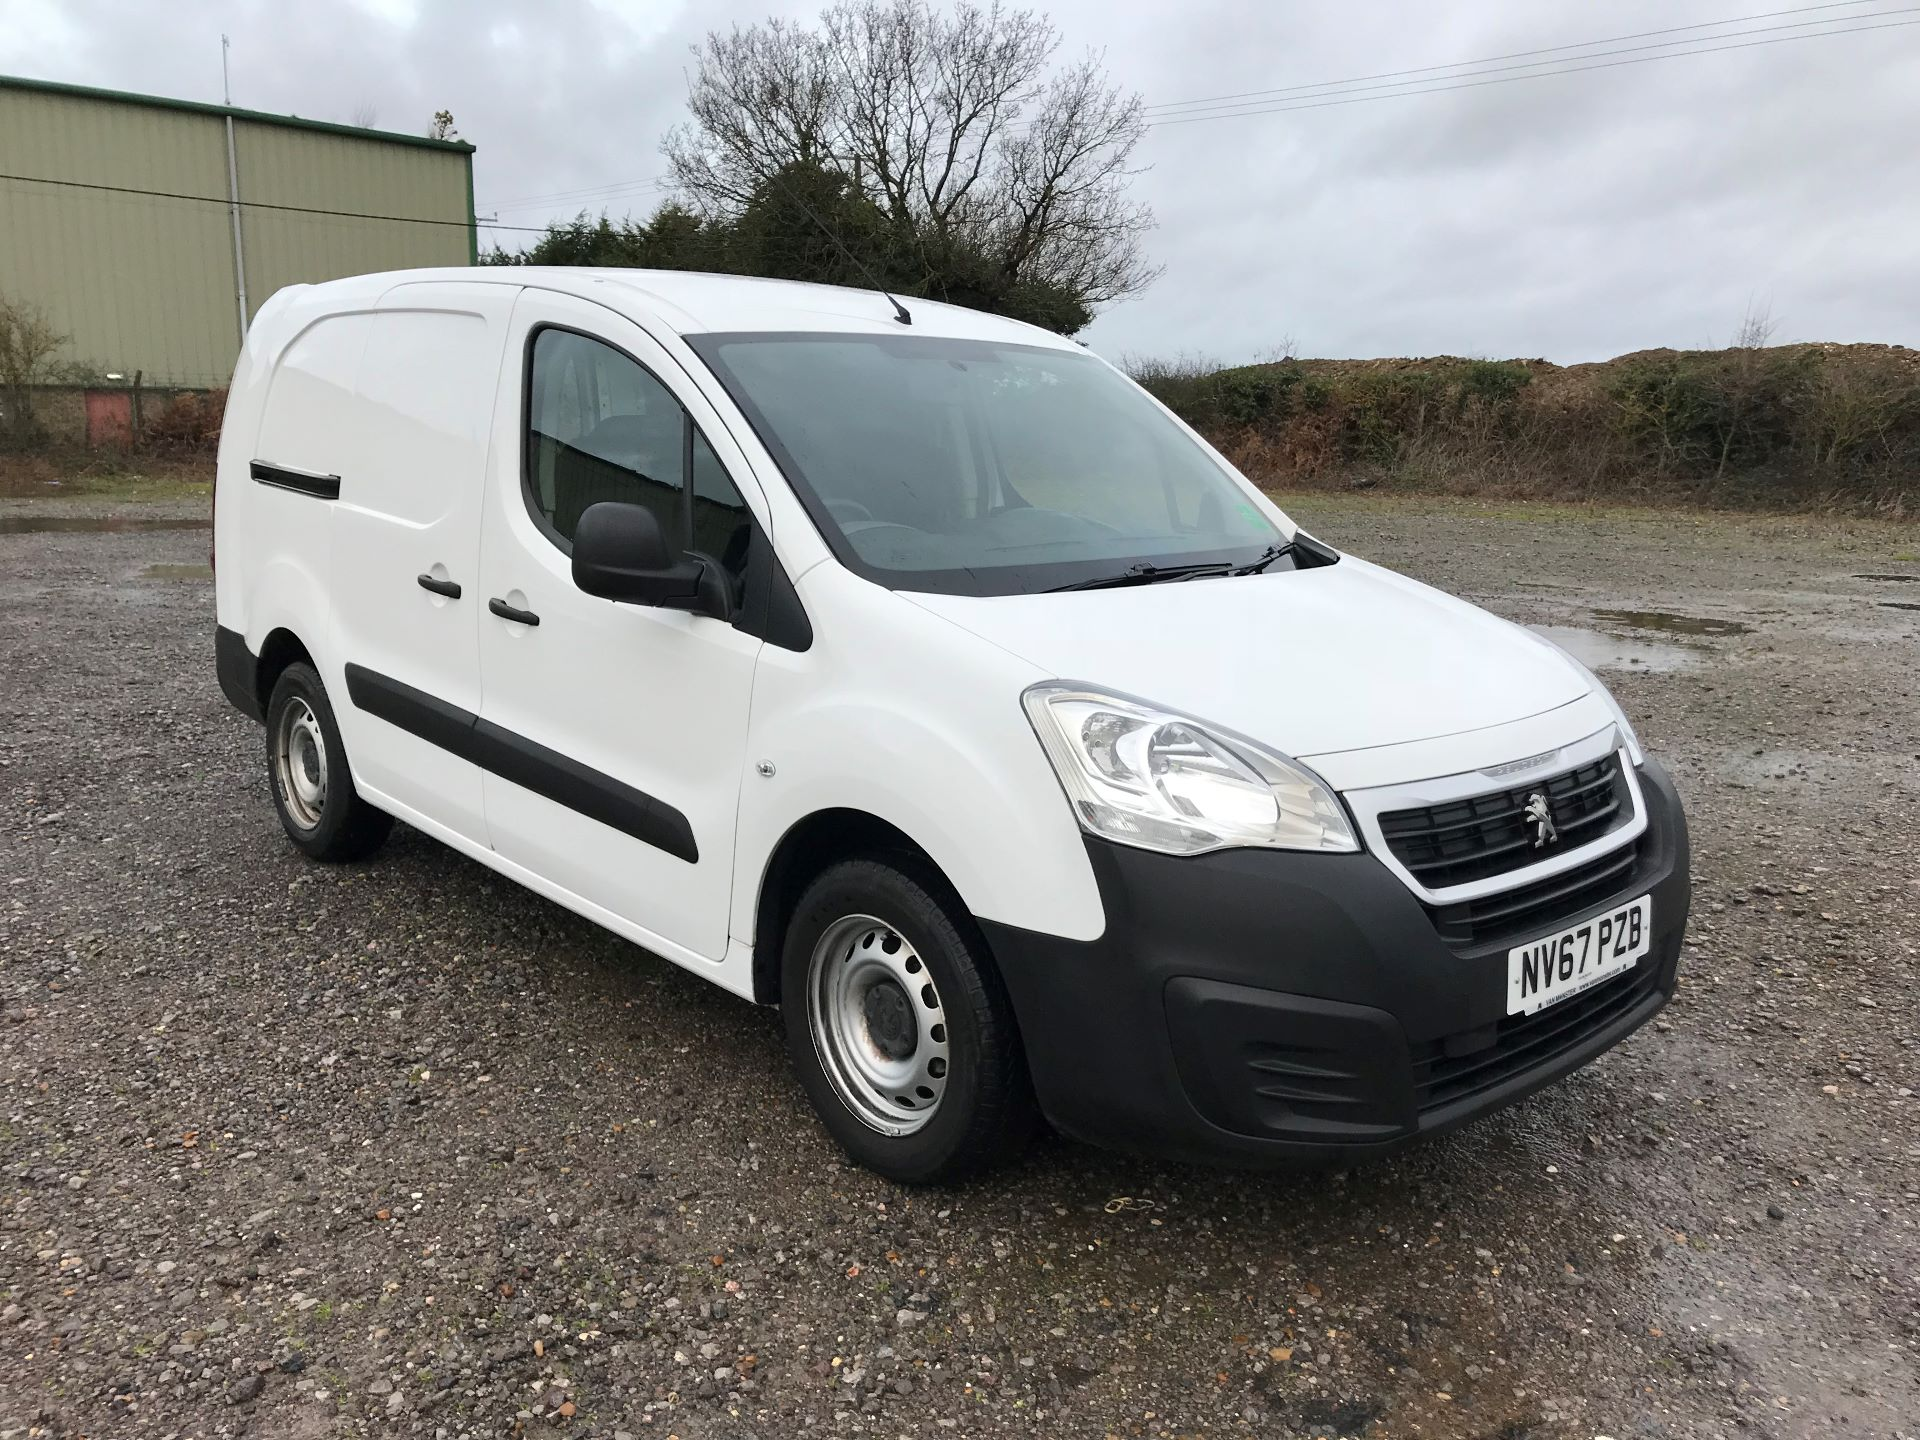 2018 Peugeot Partner 715 S 1.6 Bluehdi 100 Crew Van Euro 6 *Restricted to 69MPH* (NV67PZB)